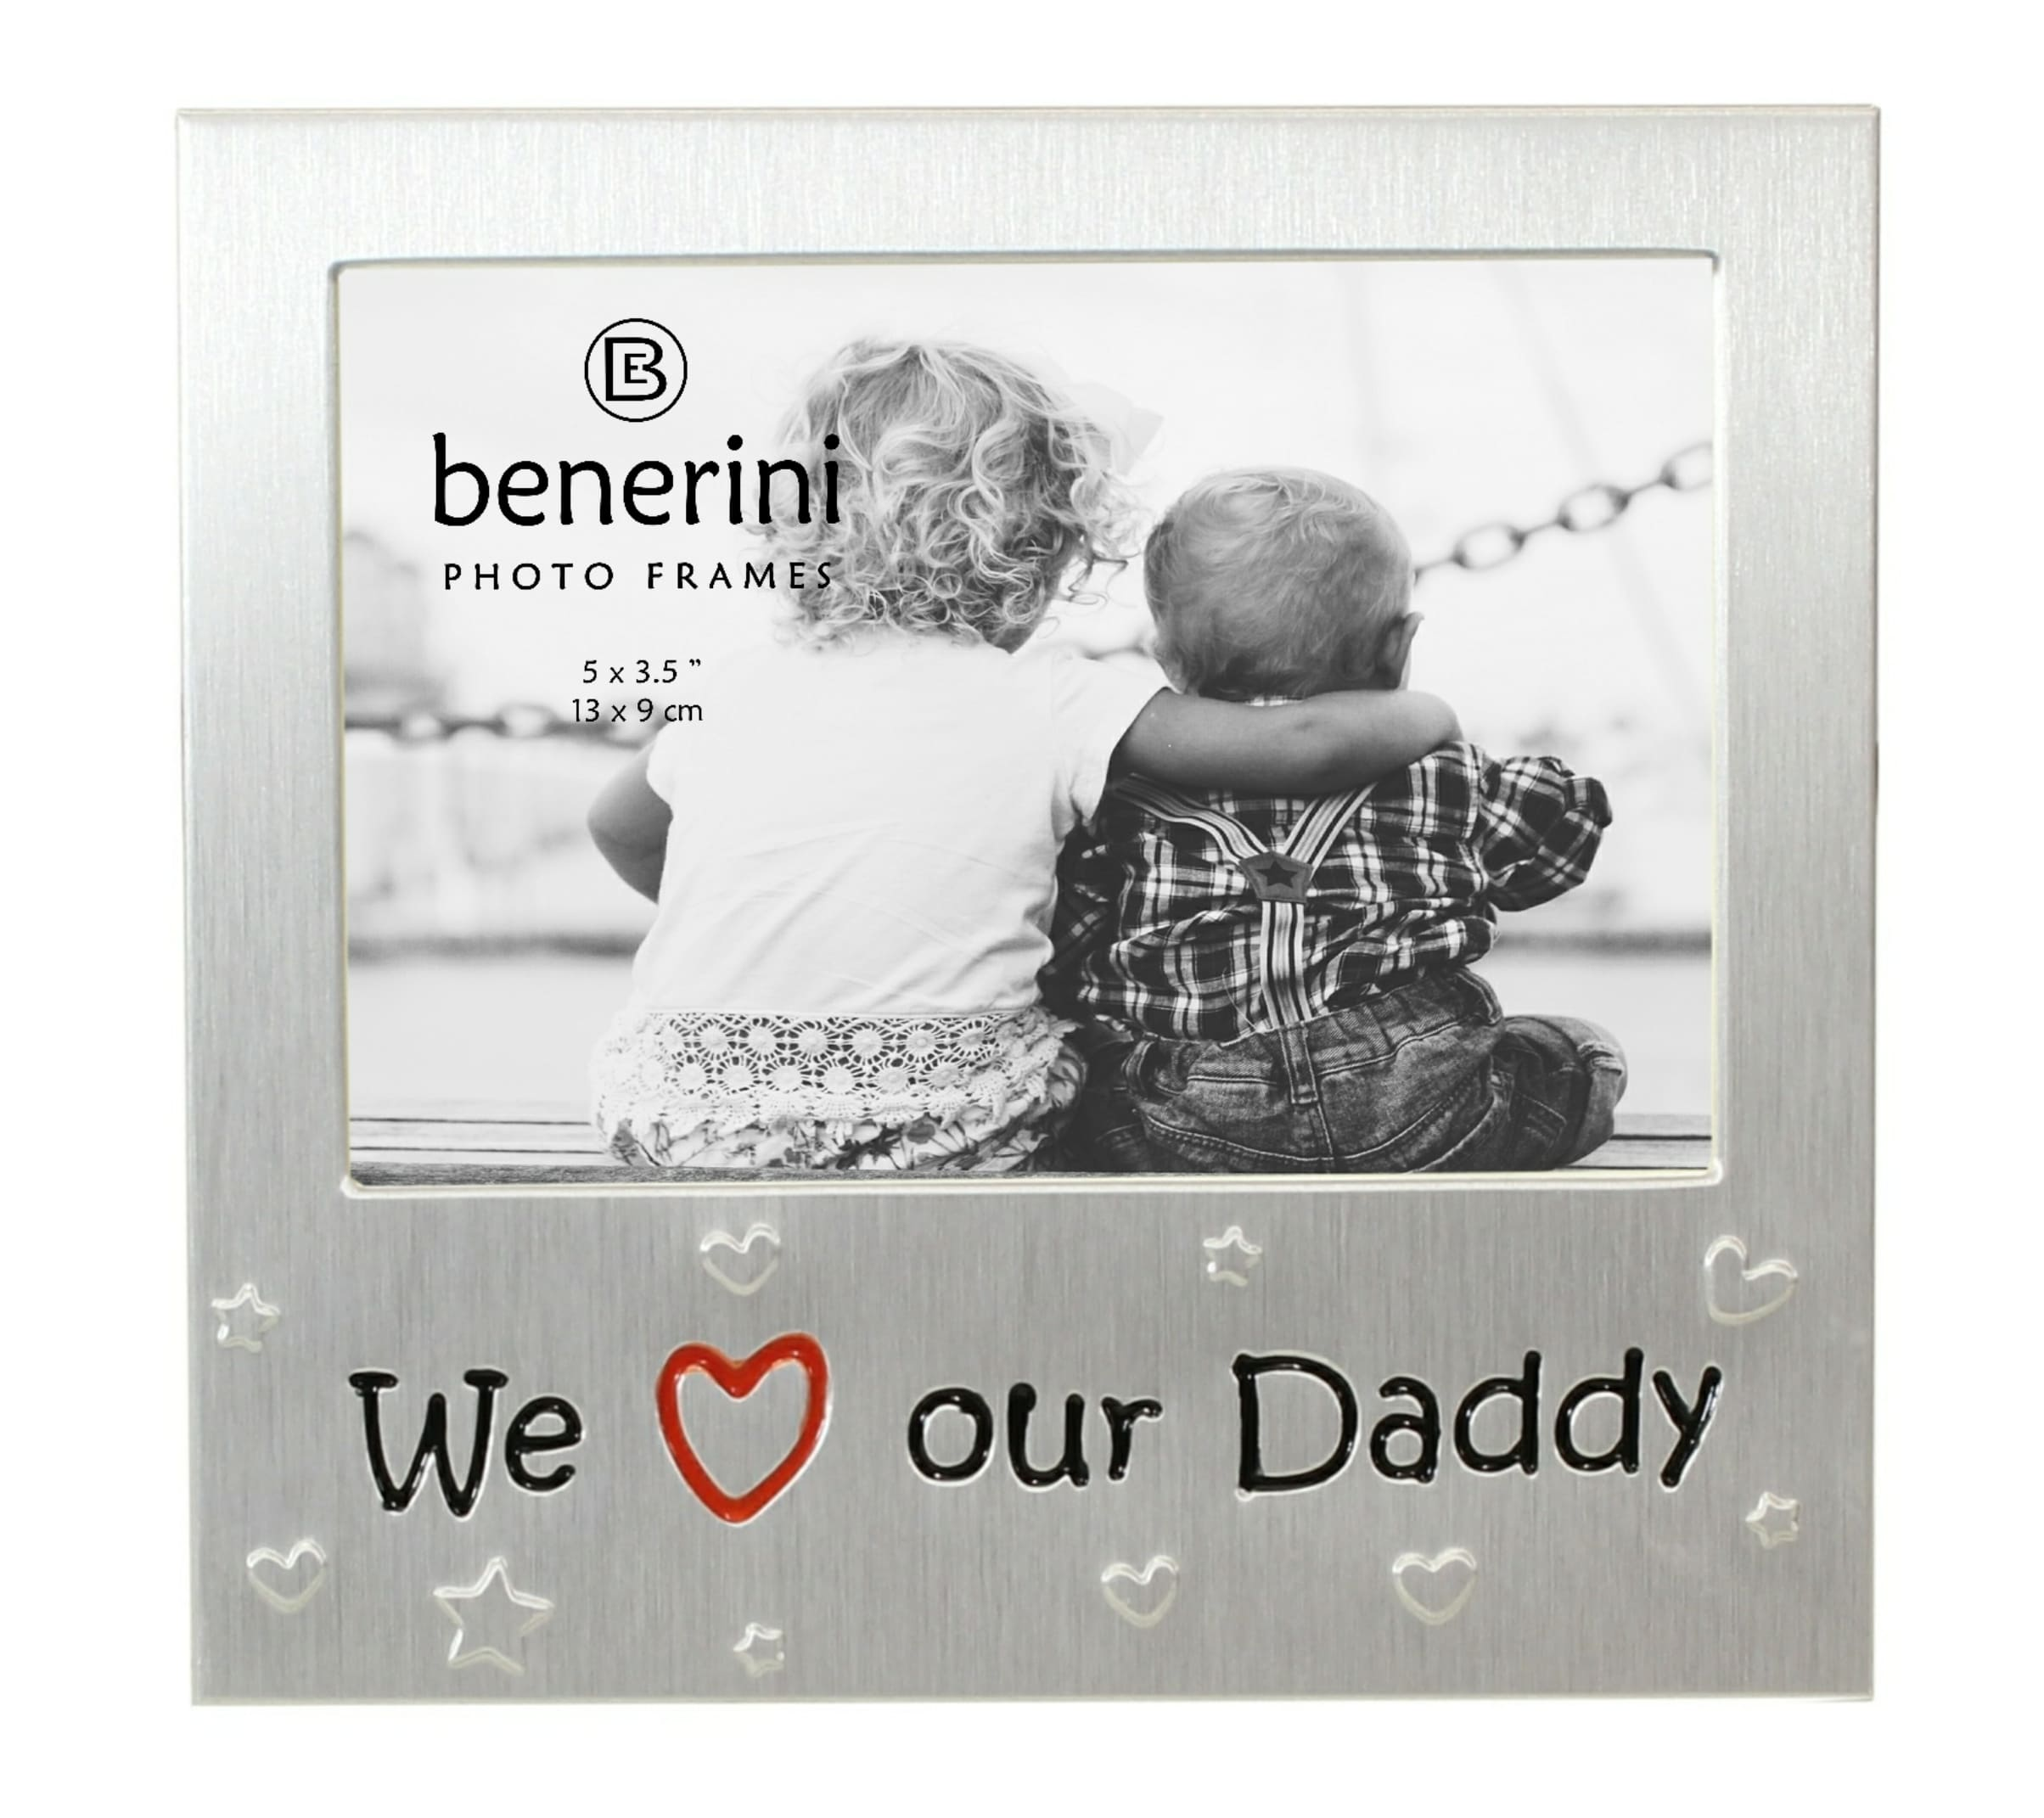 We Love Our Mummy & Daddy Photo Frame Gift Idea| benerini